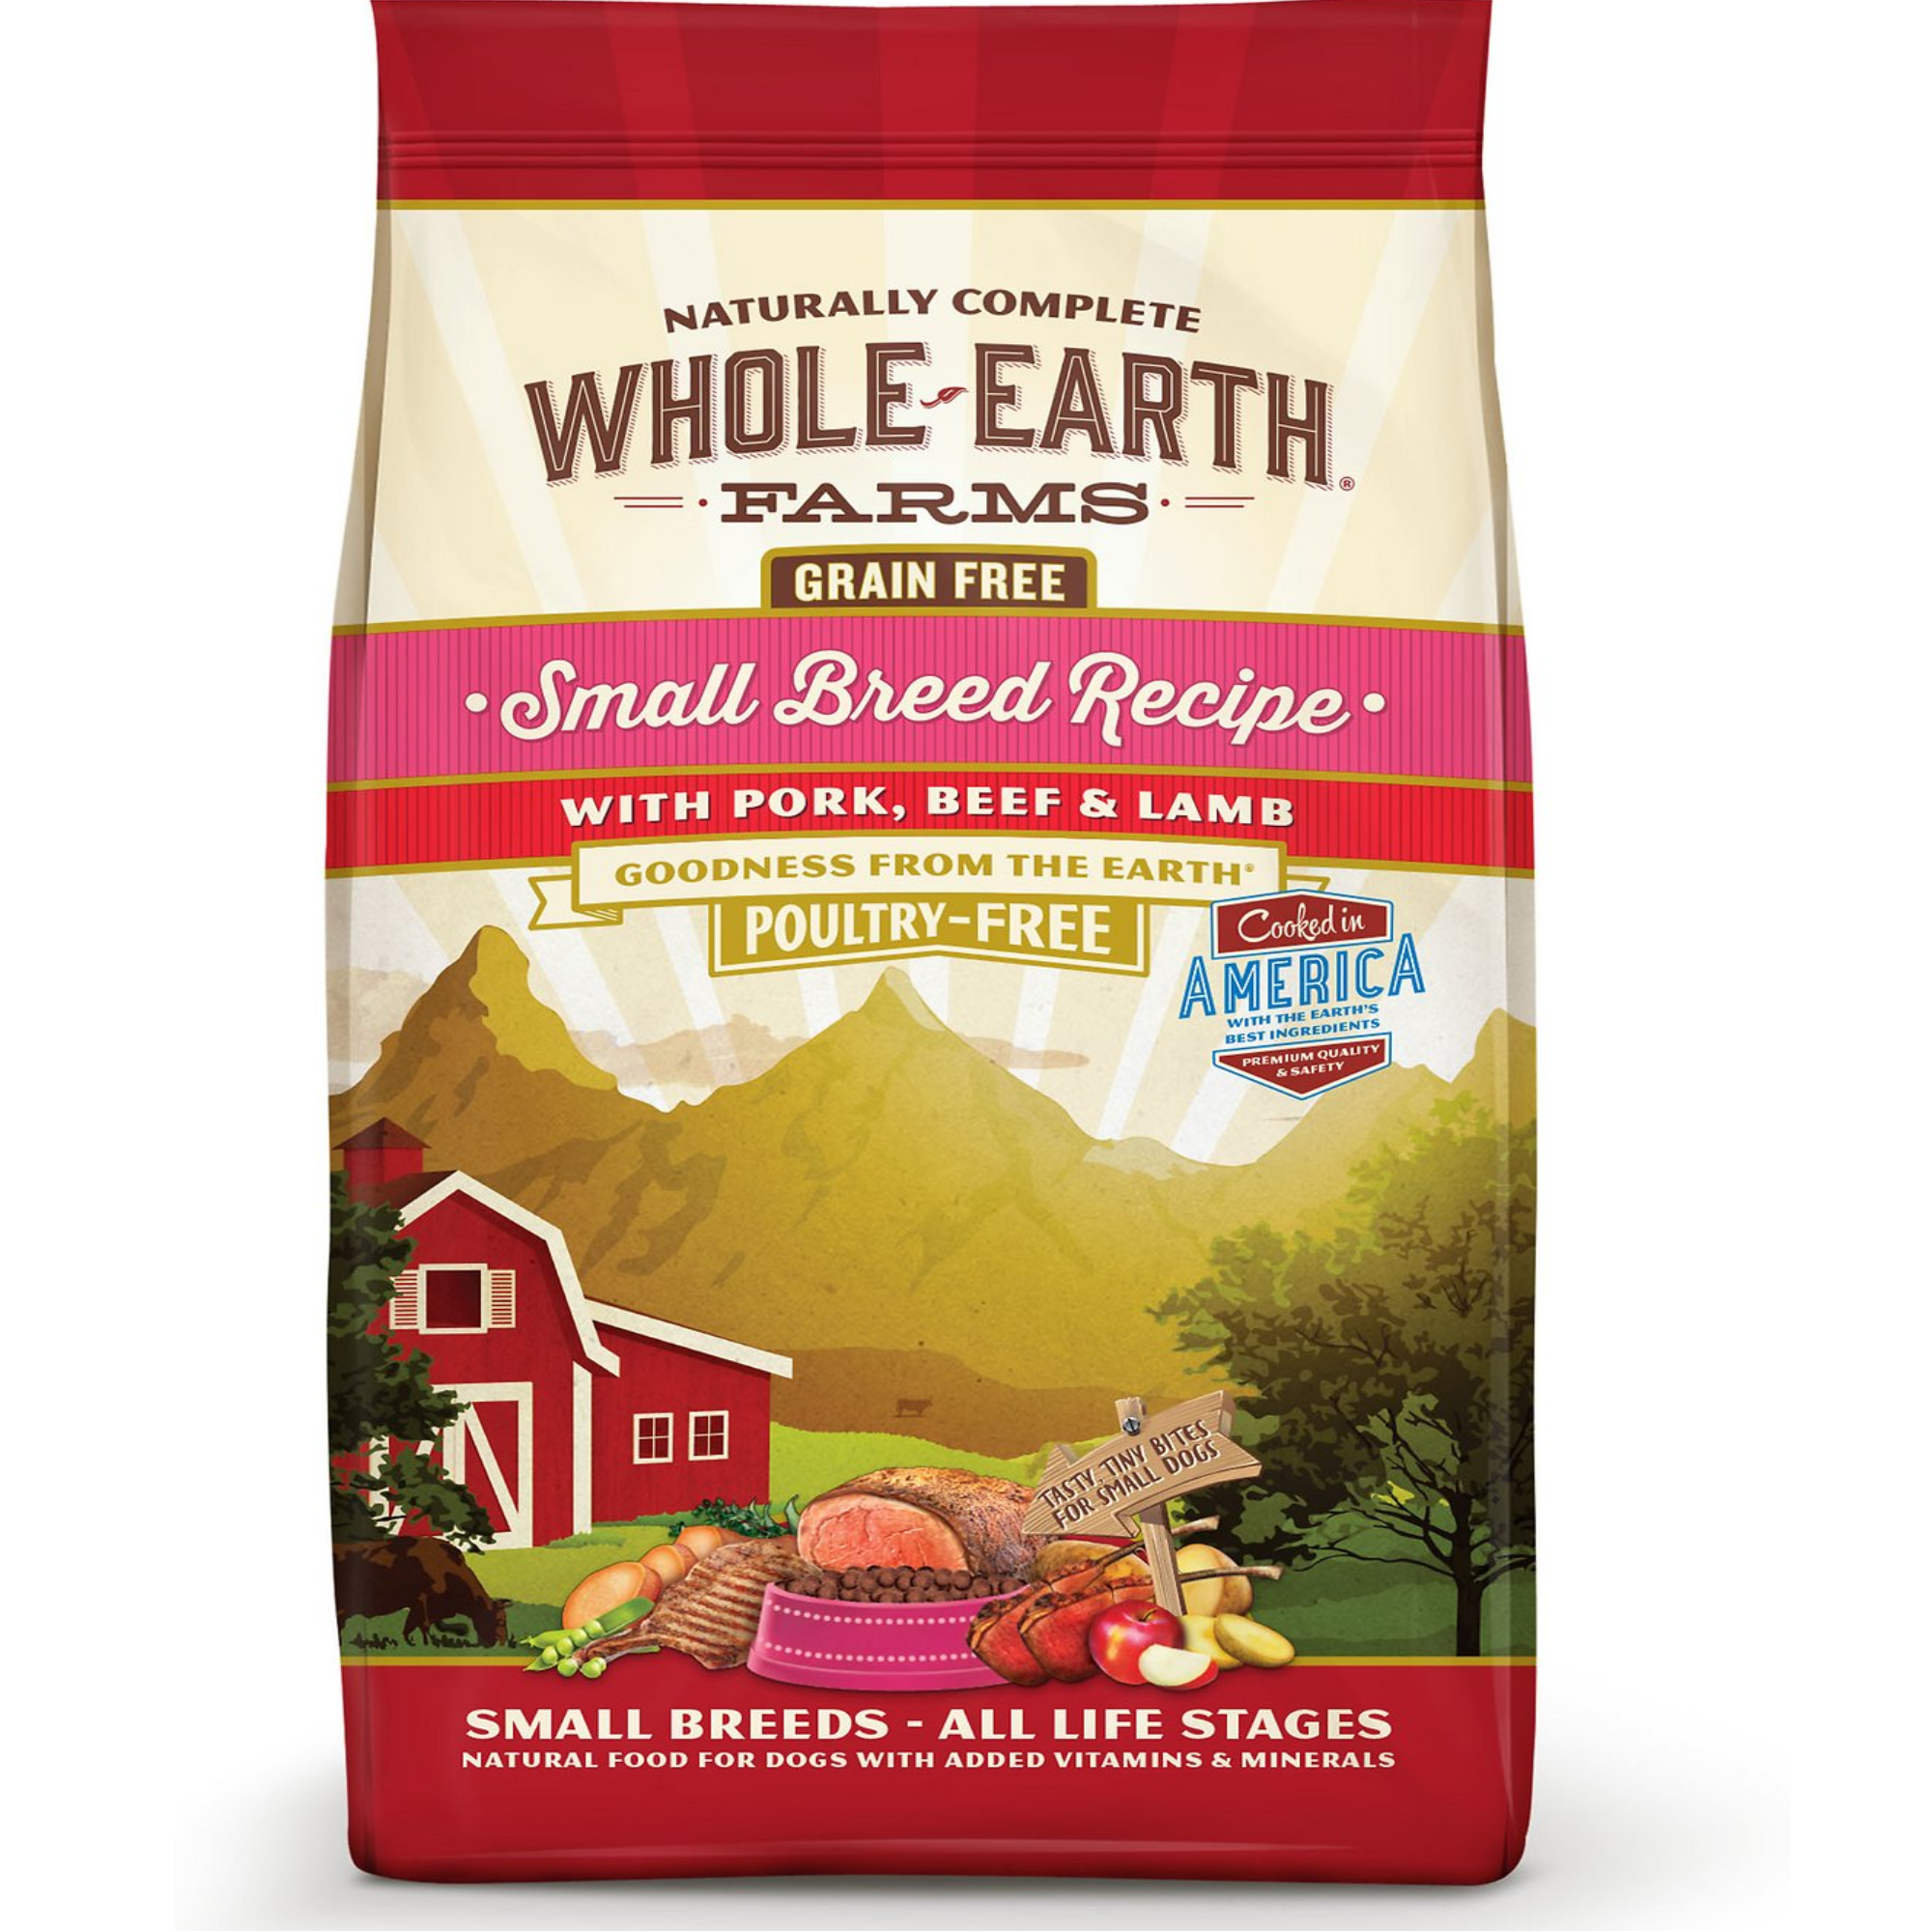 Whole Earth Farms Small Breeds-All Life Stages Pork,Beef &Lamb Dog Food